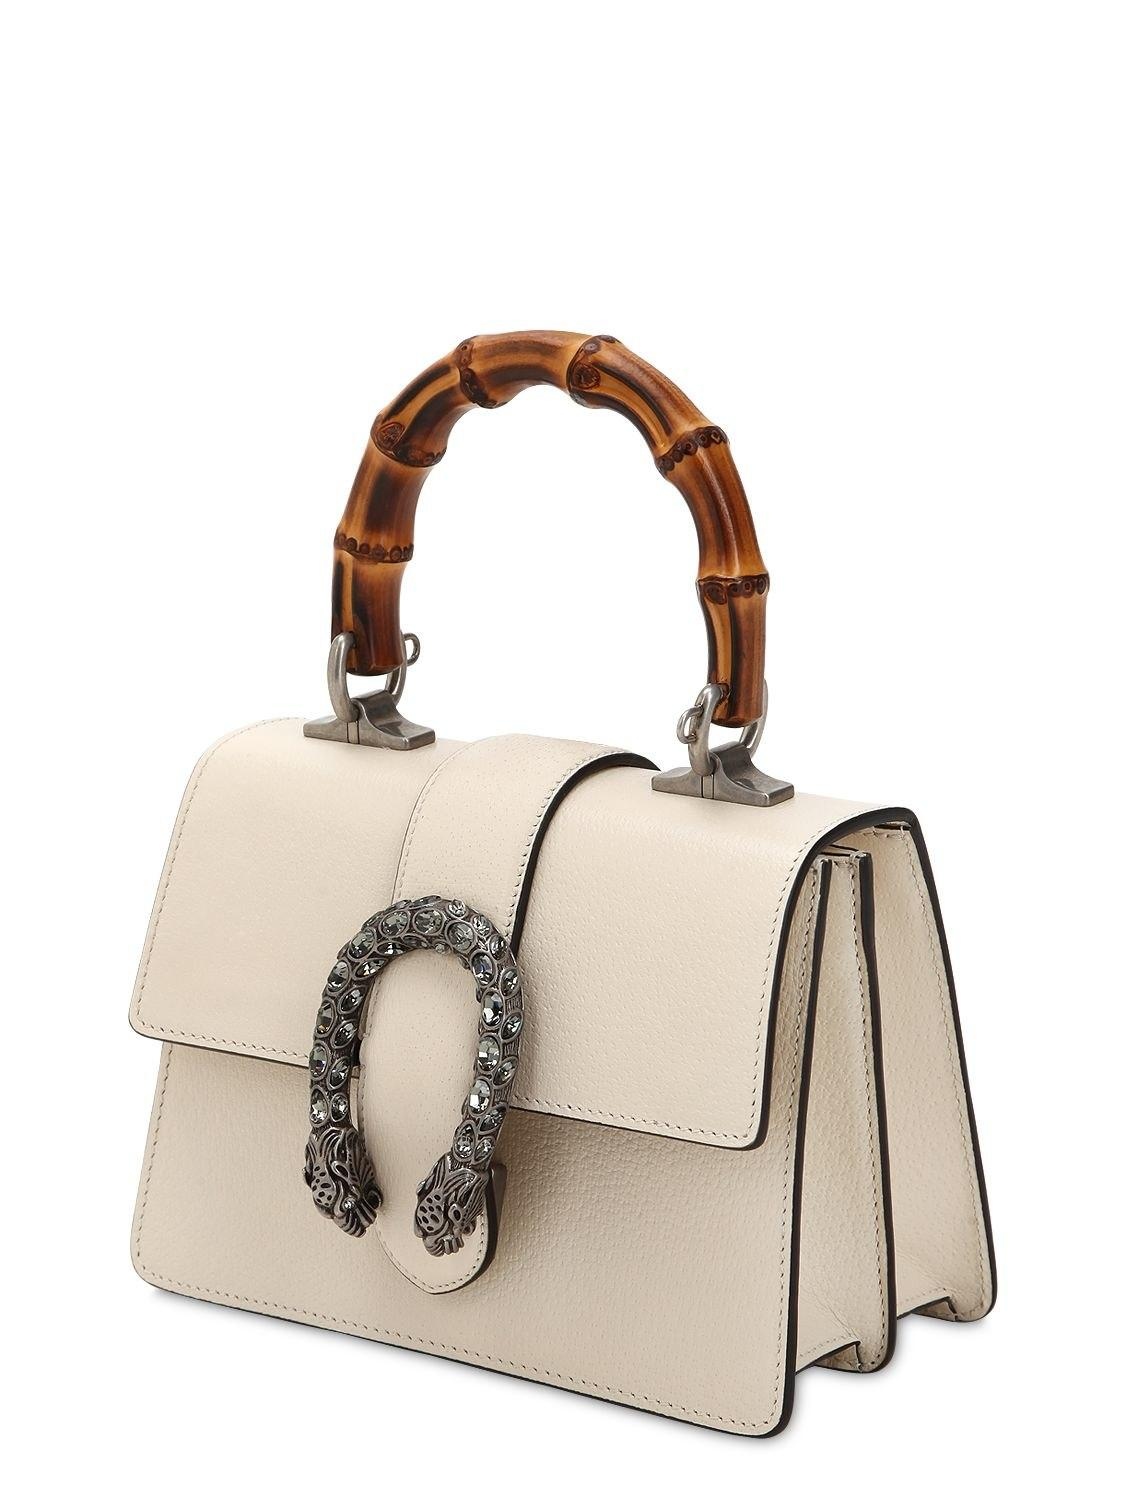 7b4fd6f4c0c Gucci Mini Dionysus Bamboo   Leather Bag in White - Lyst